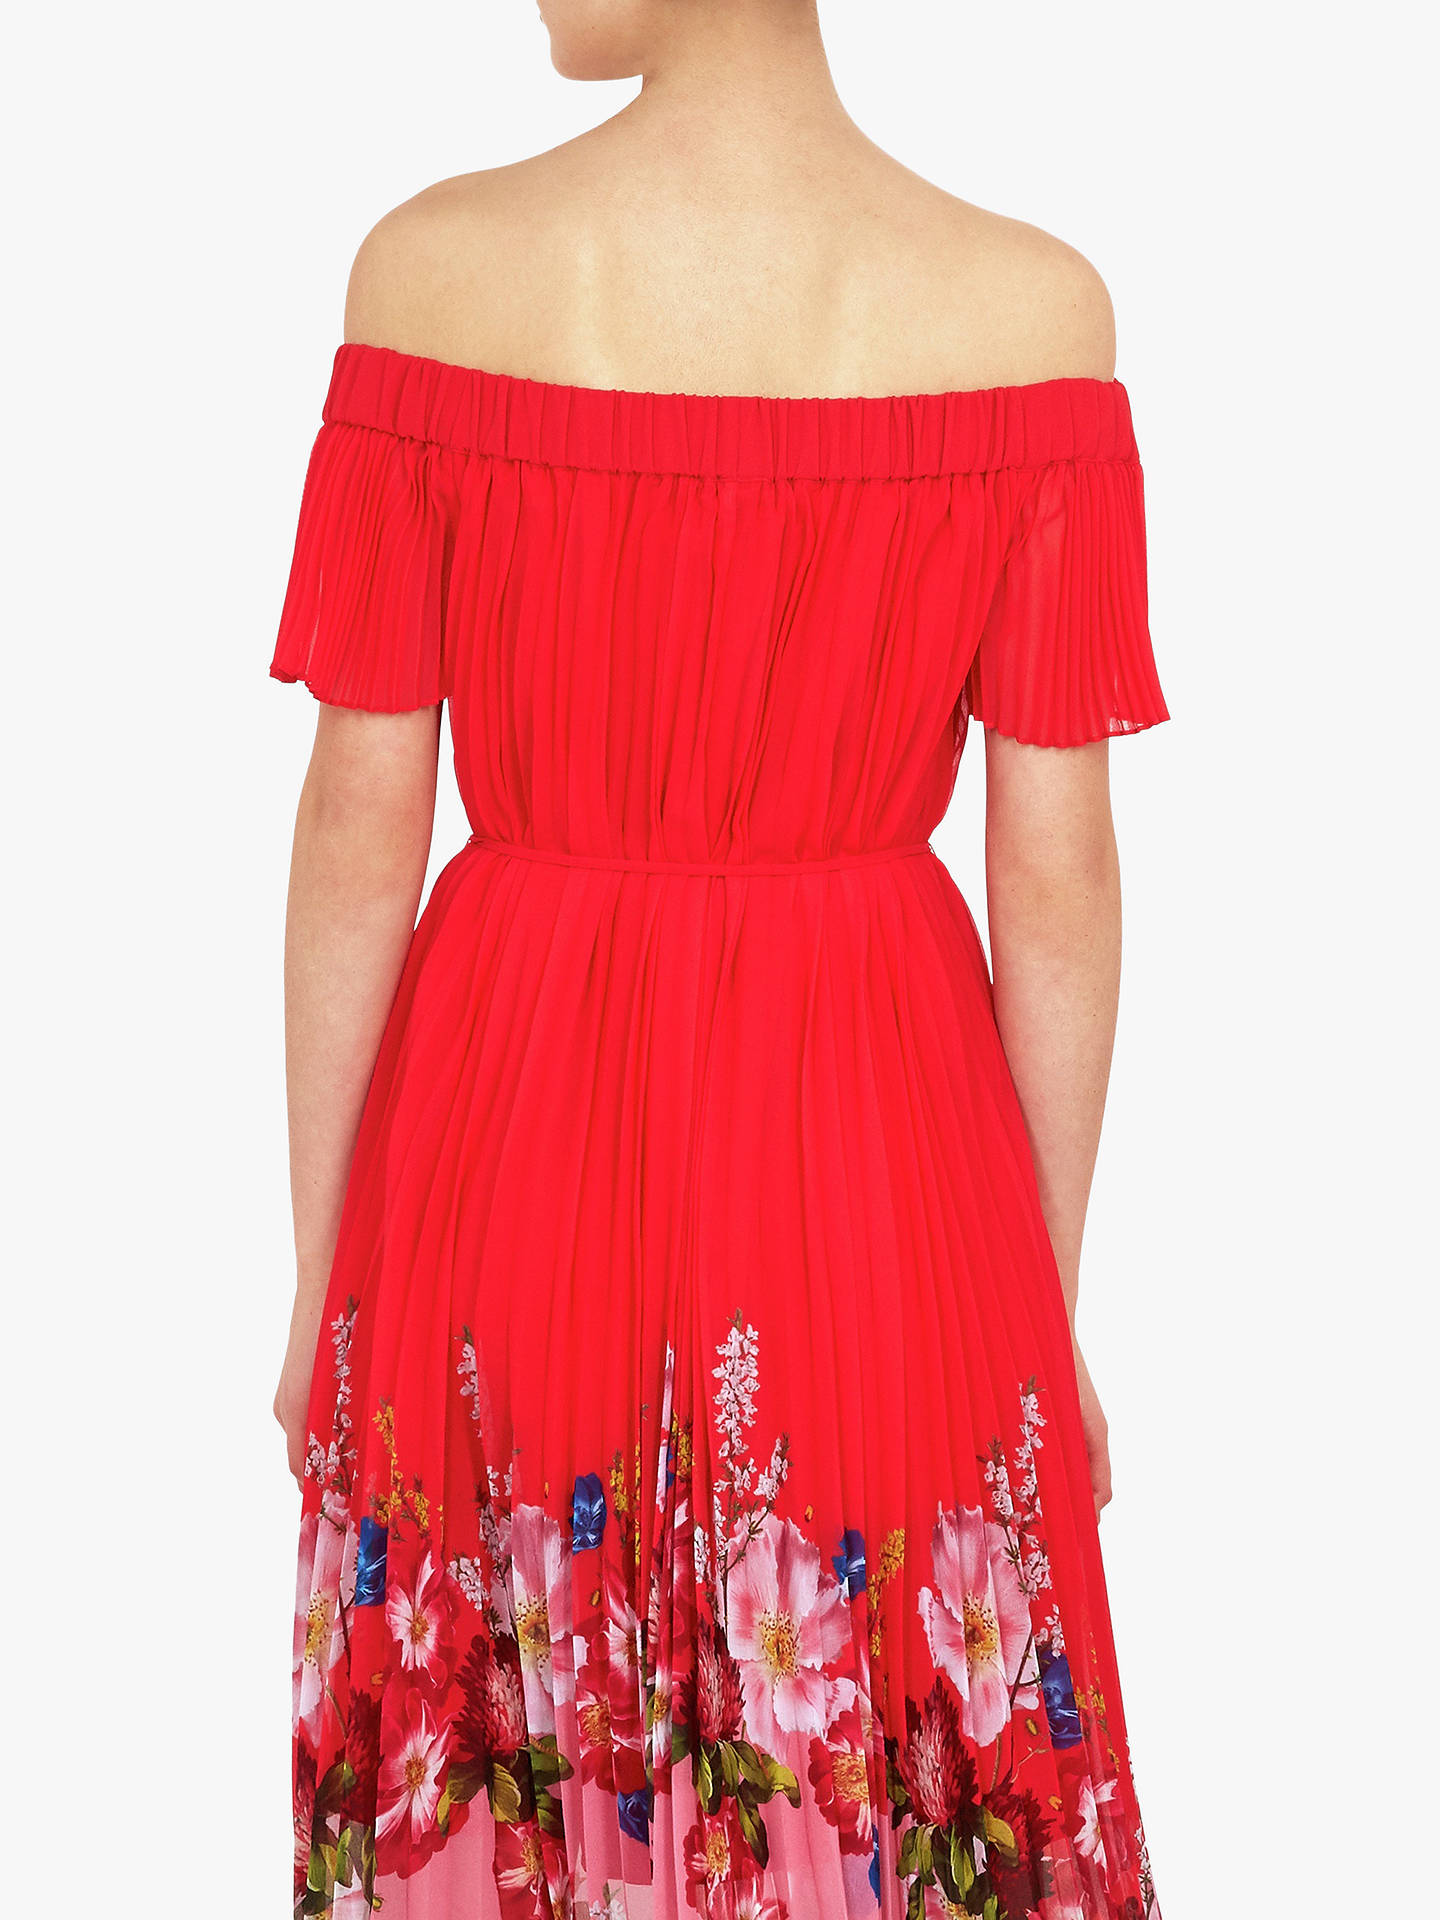 f1fea6c9f71 Ted Baker Gillyy Bardot Floral Dress, Red at John Lewis & Partners